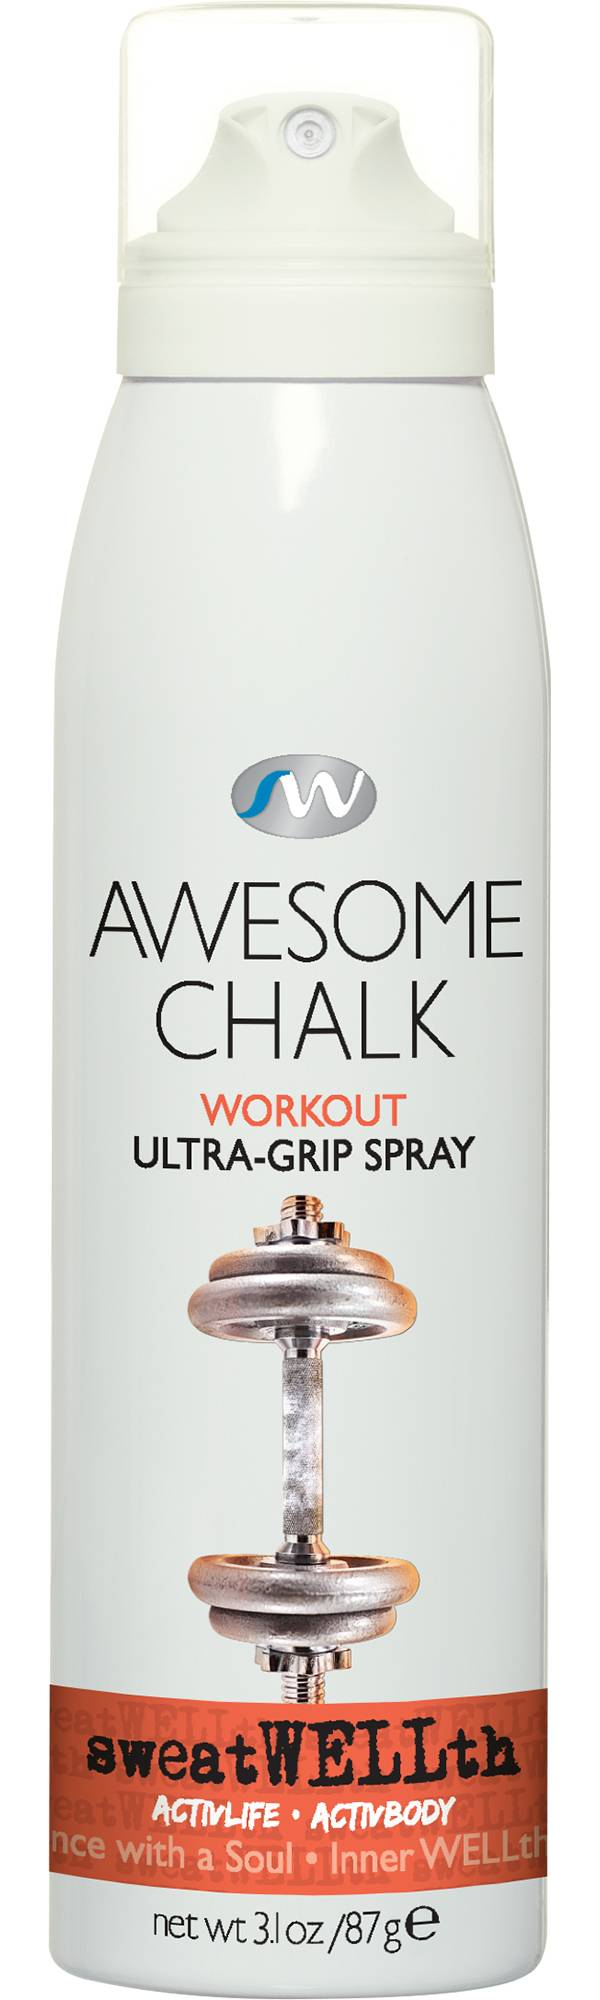 sweatWELLth Awesome Chalk Ultra Grip Spray product image